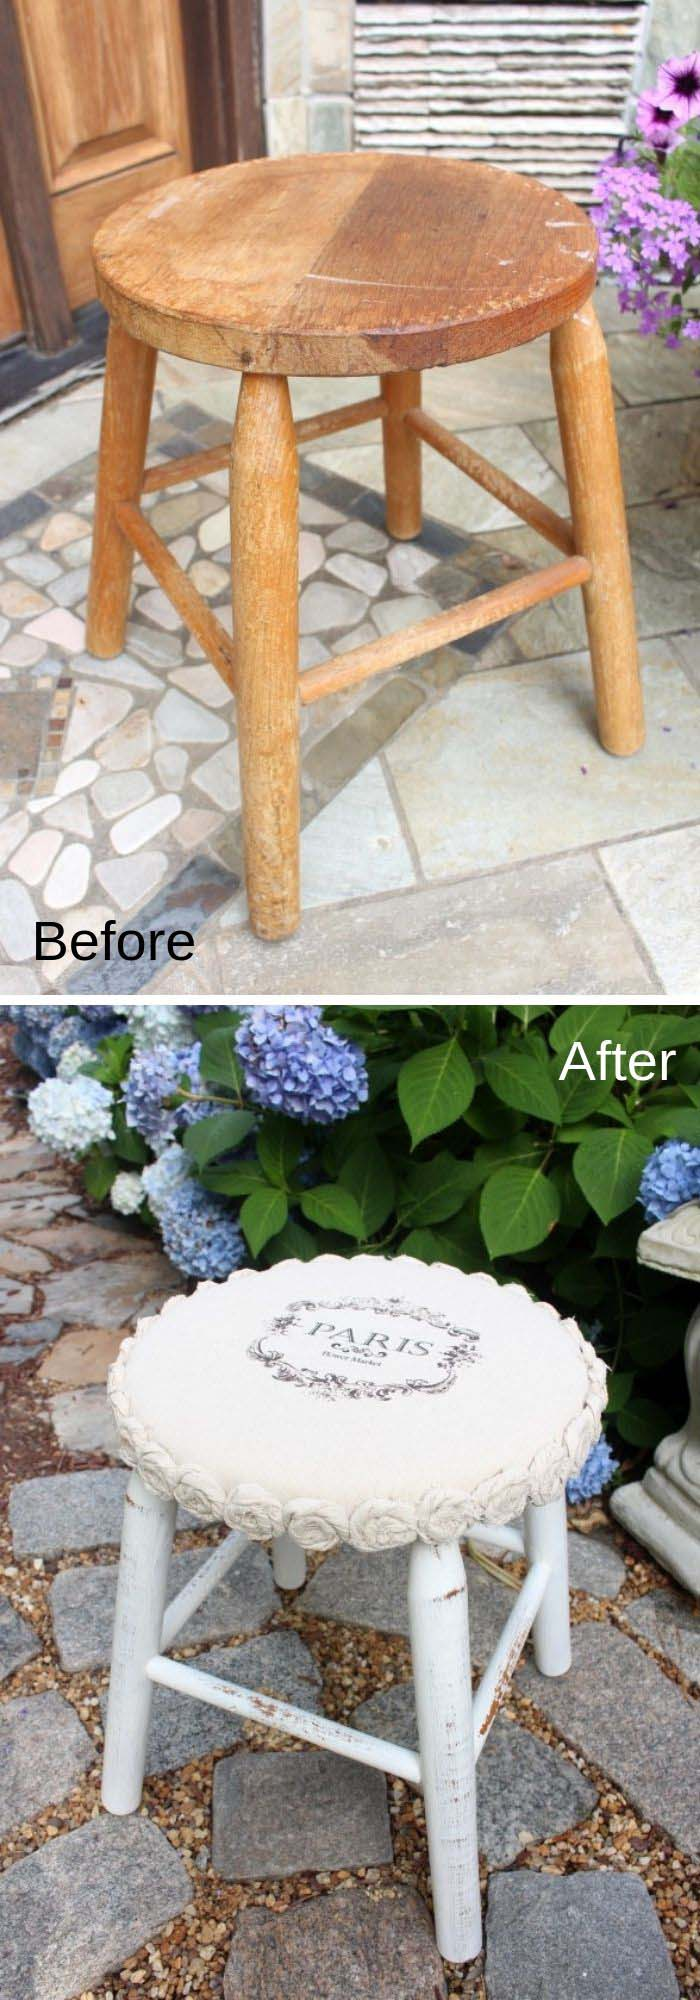 Drop Cloth Stool Makeover #furniture #makeover #diy #decorhomeideas